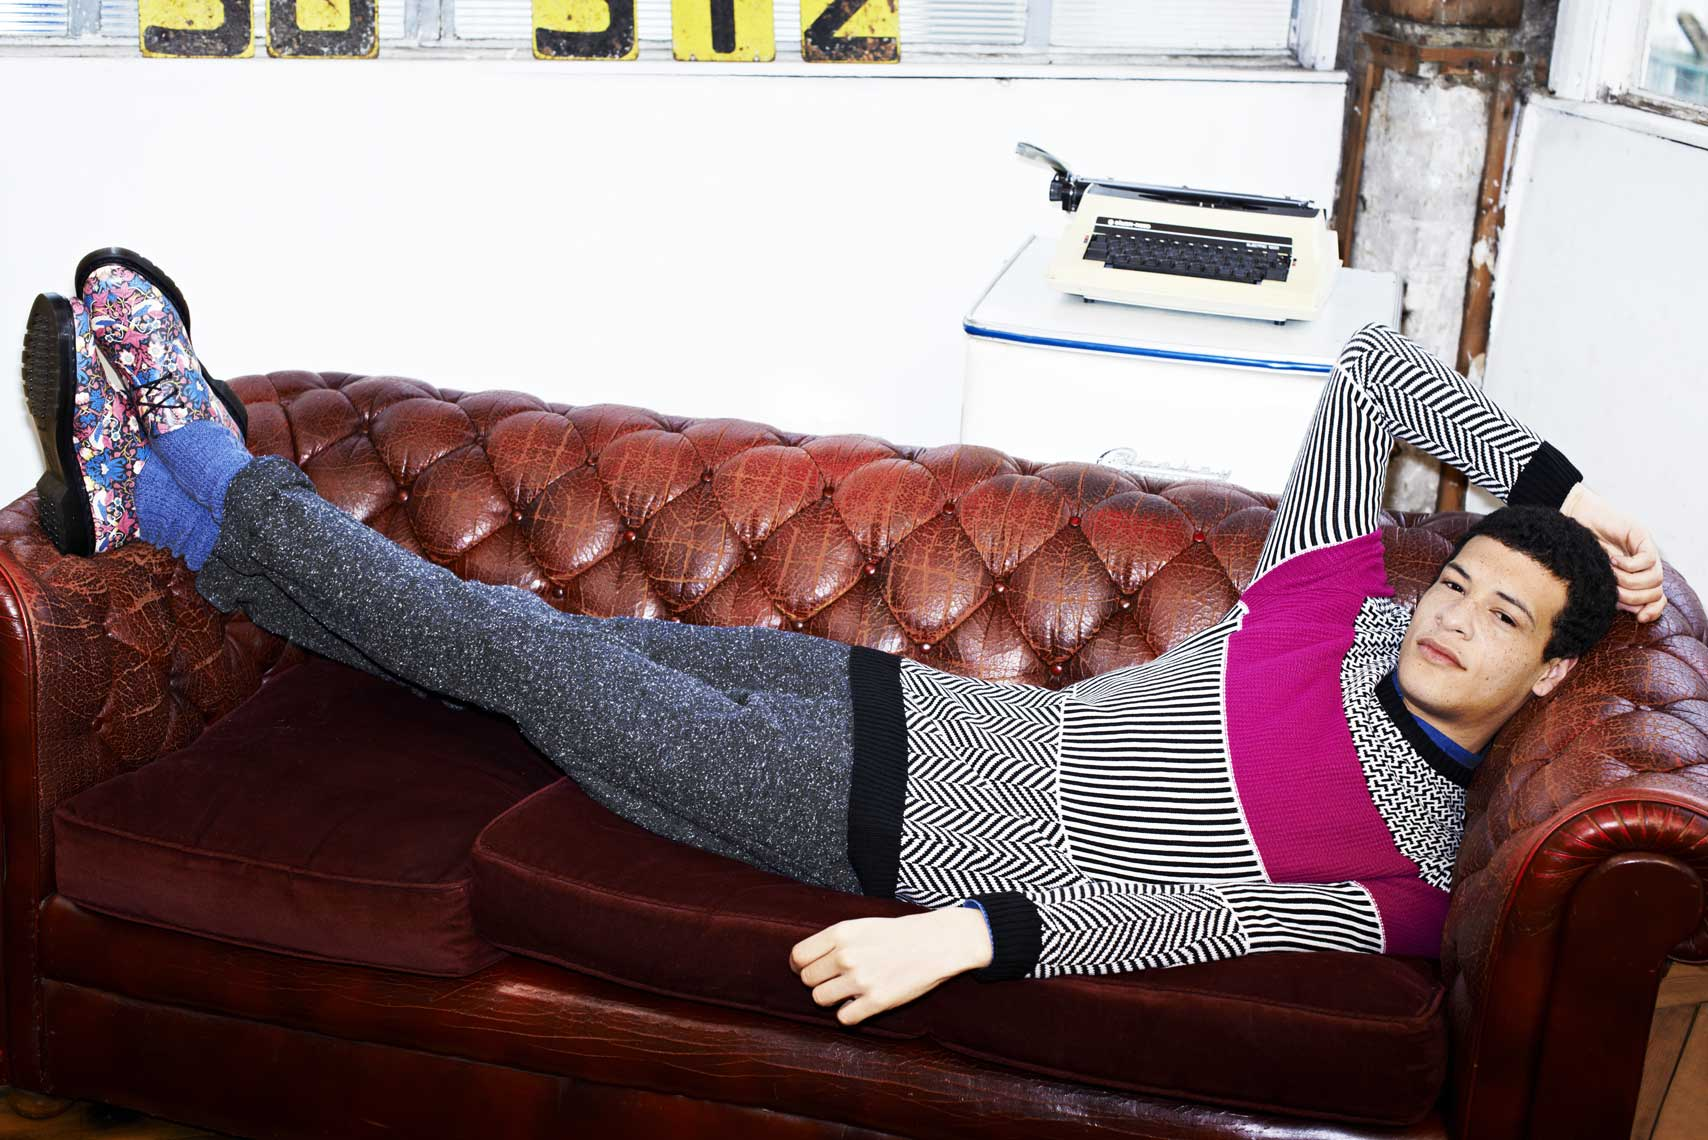 issie-gibbons-fashion-stylist-urban-knit-menswear-campaign-warehouse-leather-sofa